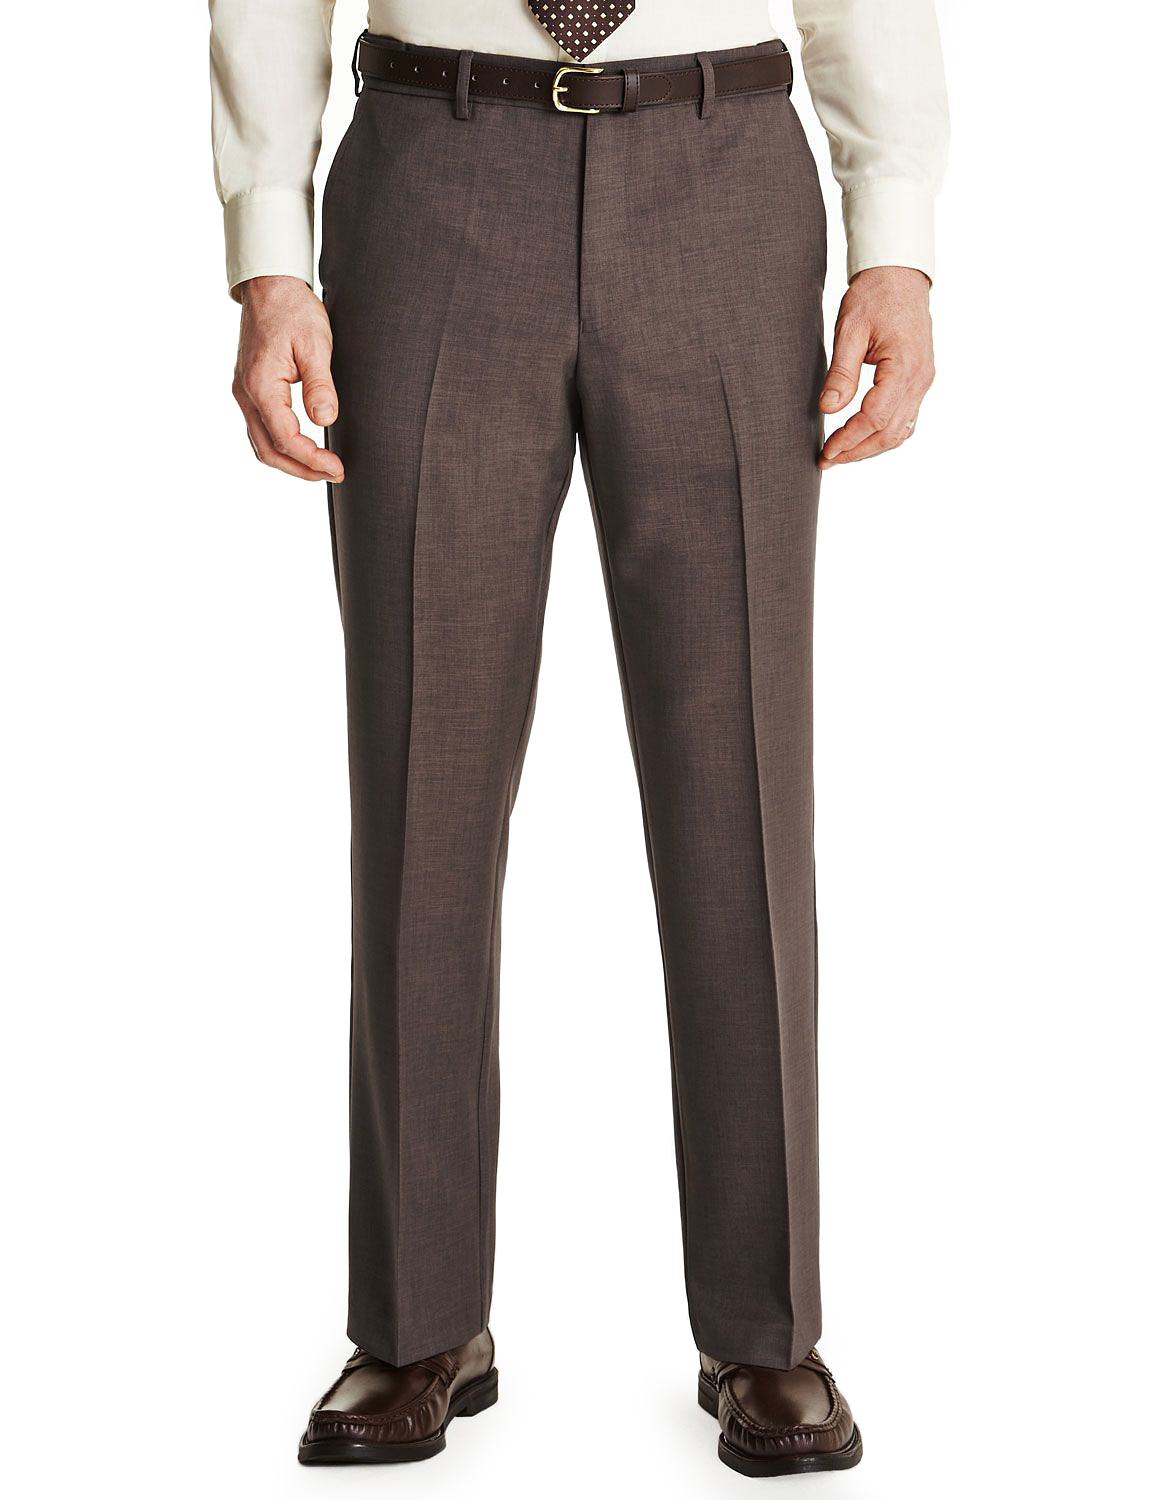 Mens-Farah-Flex-Trouser-Pants-With-Self-Adjusting-Waistband thumbnail 7